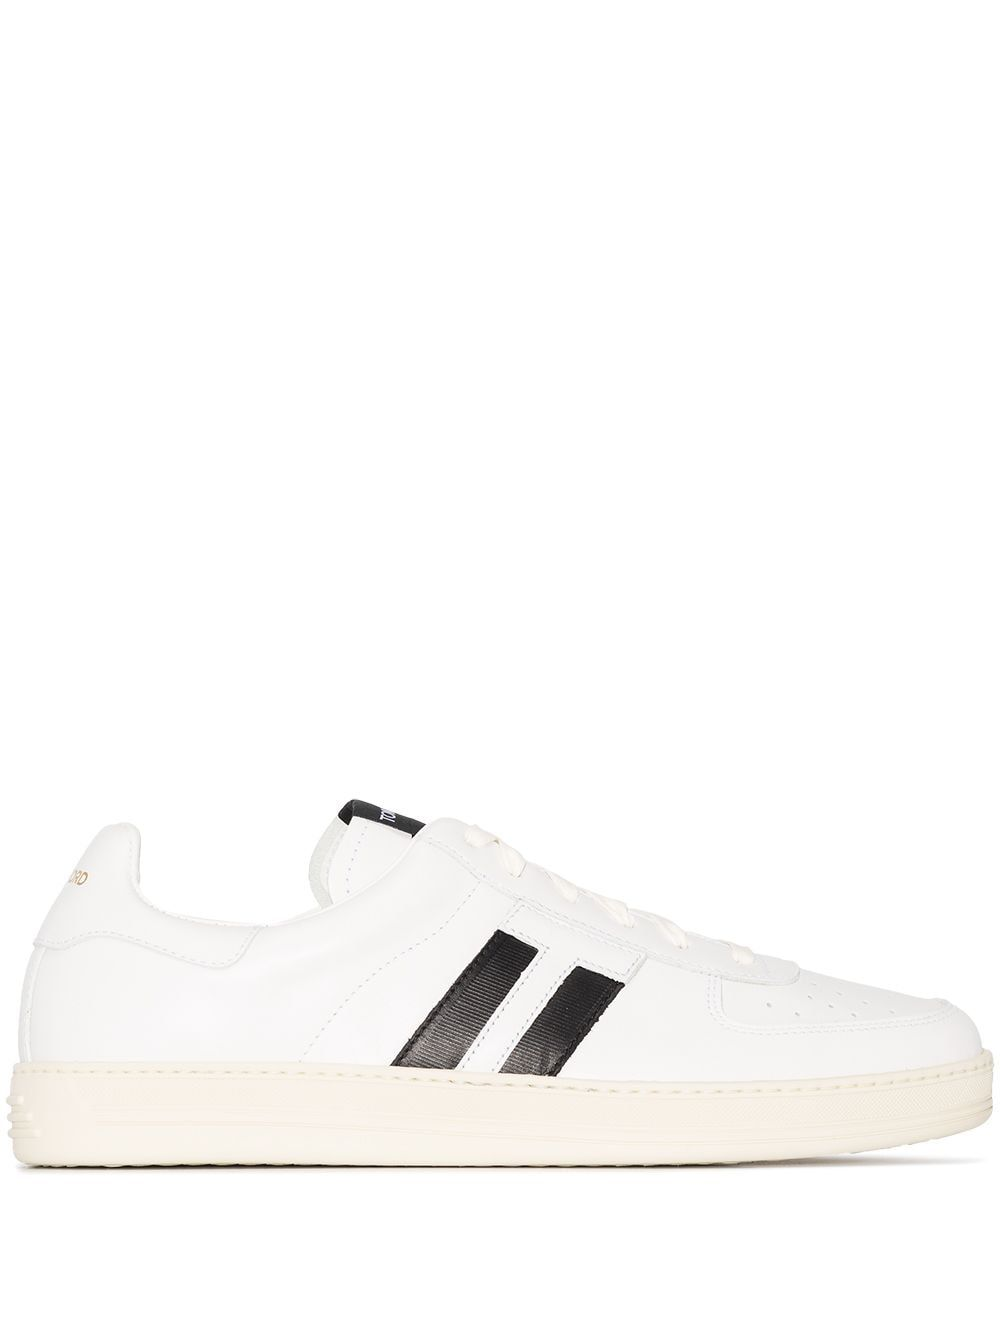 Tom ford sneakers bianco